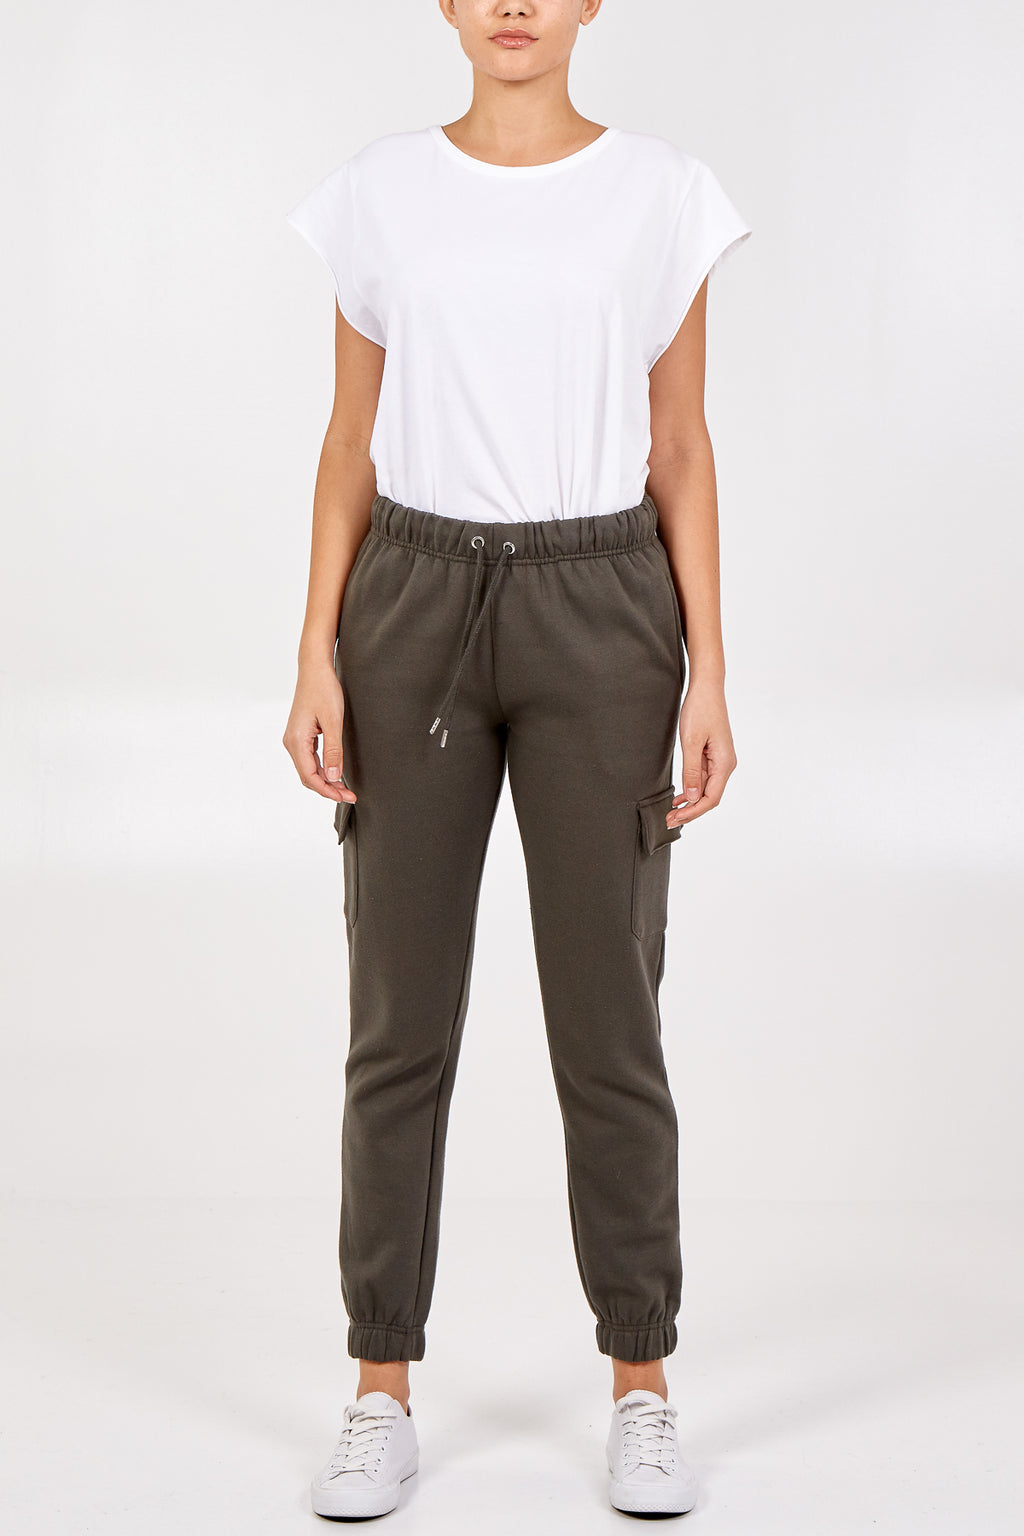 Patch Pocket Jogger